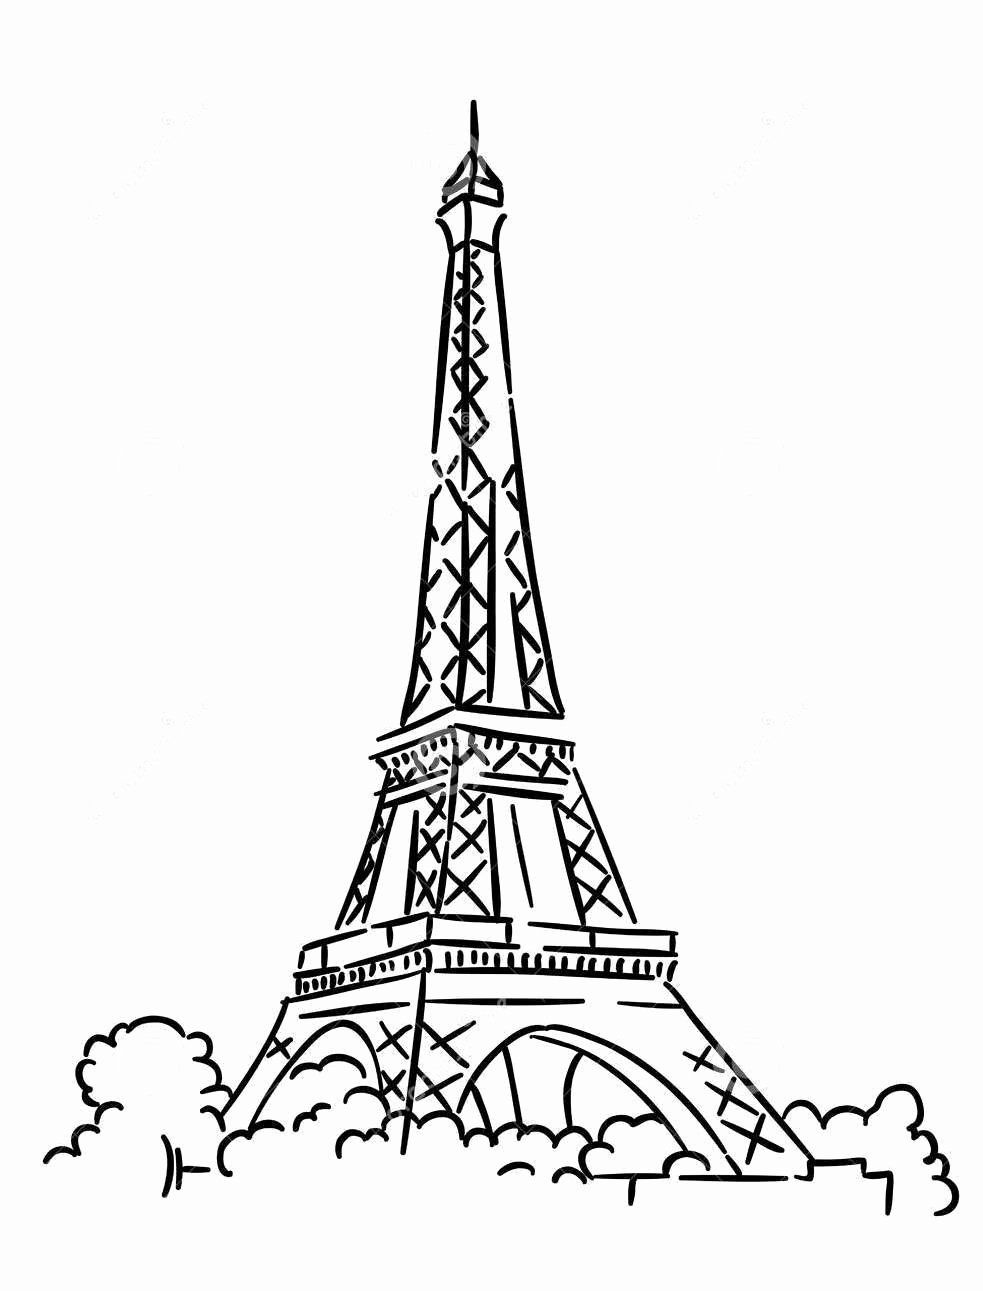 Eifel Tower Coloring Page Best Of Eiffel Tower Coloring Pages Sustainable St Albans Eiffel Tower Painting Eiffel Tower Drawing Eiffel Tower Tattoo